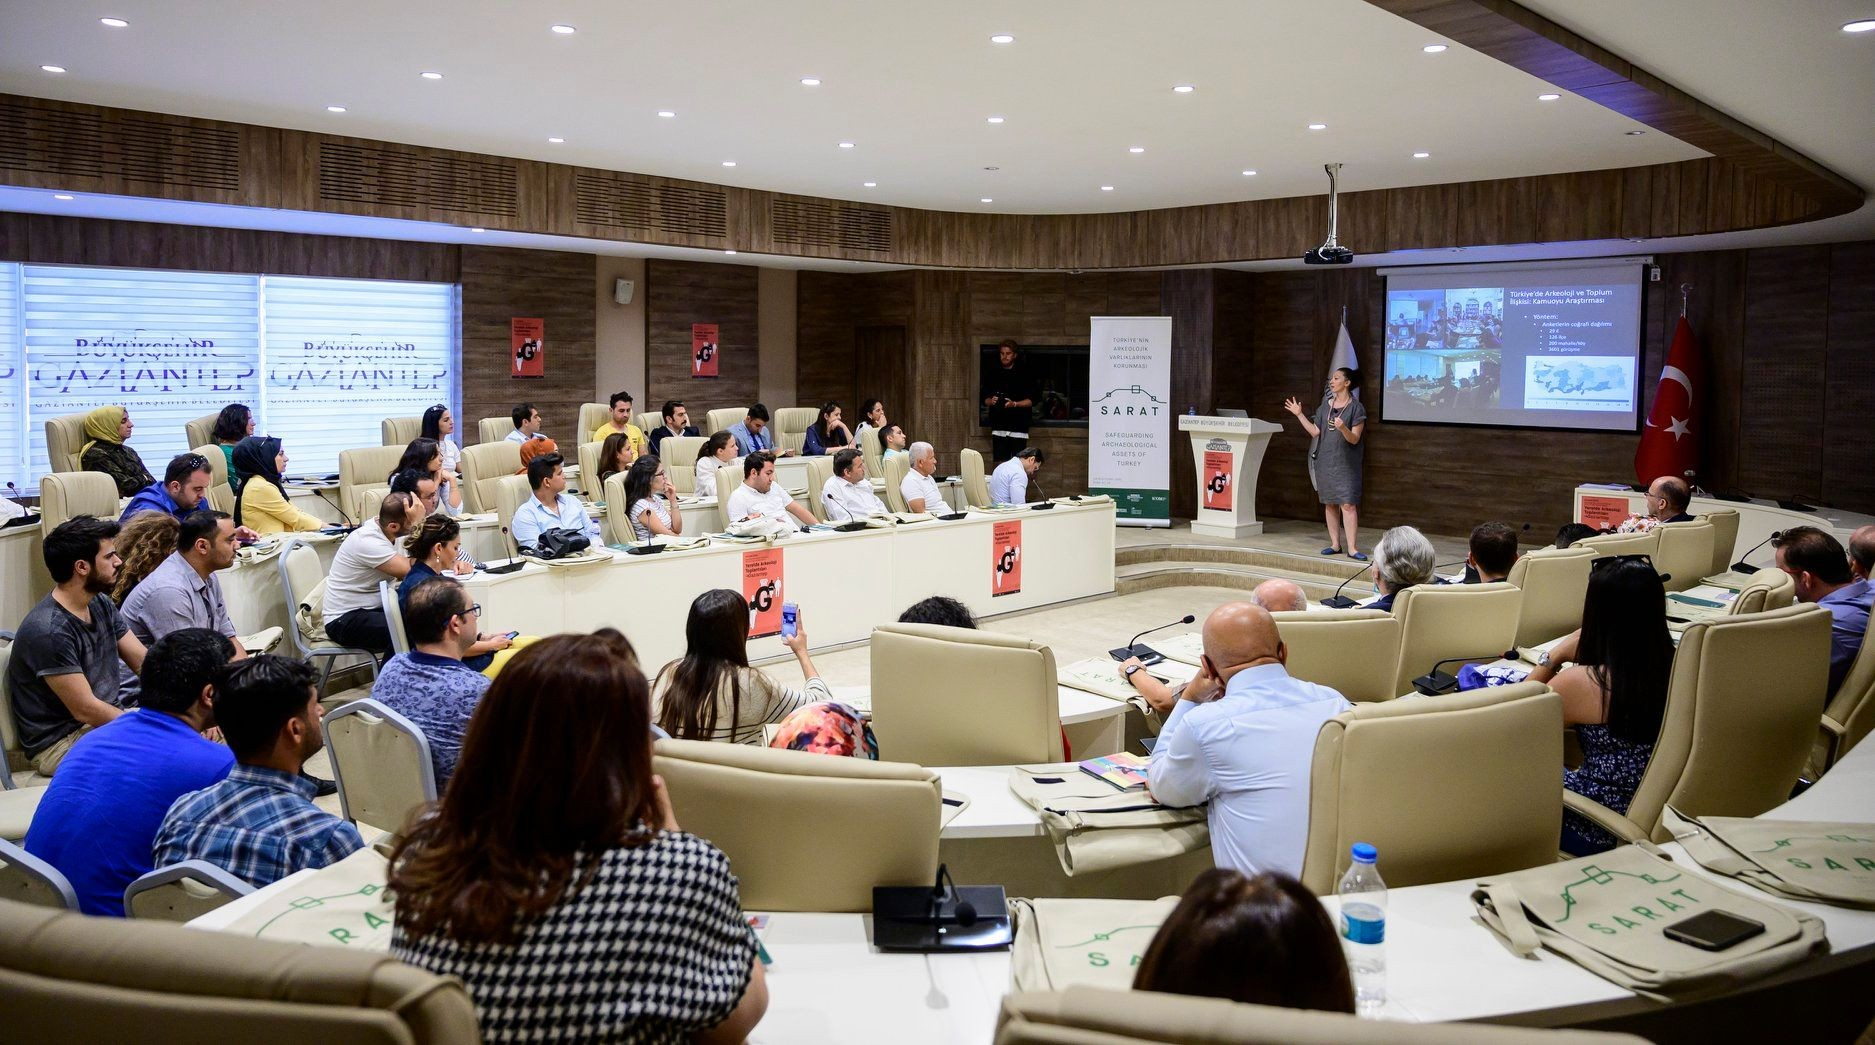 Gaziantep becomes the second stop for Archaeology in Local Context Workshops